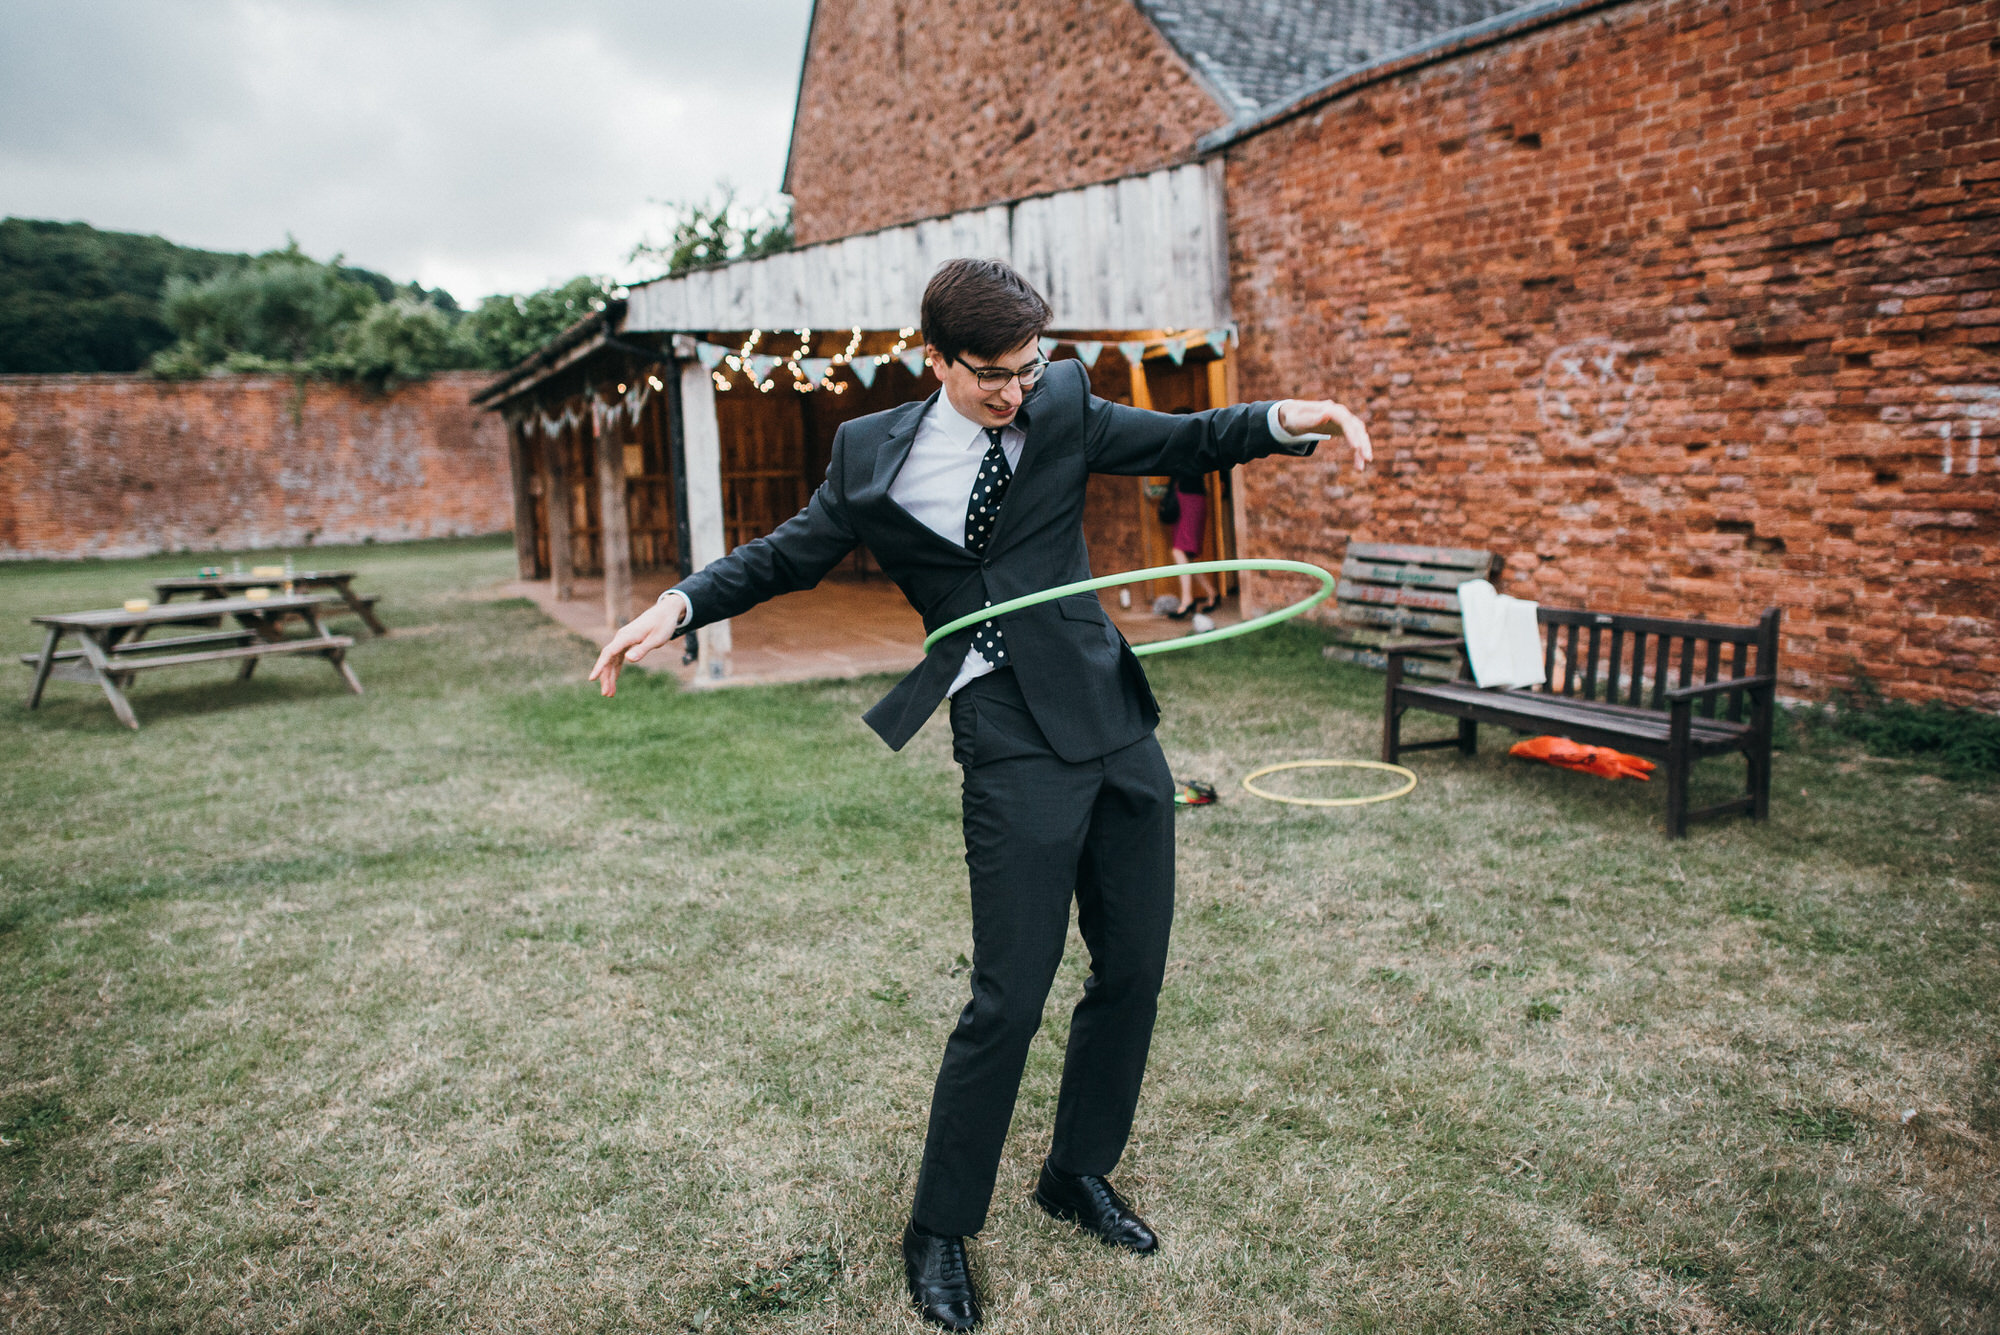 Hula hooping at wedding